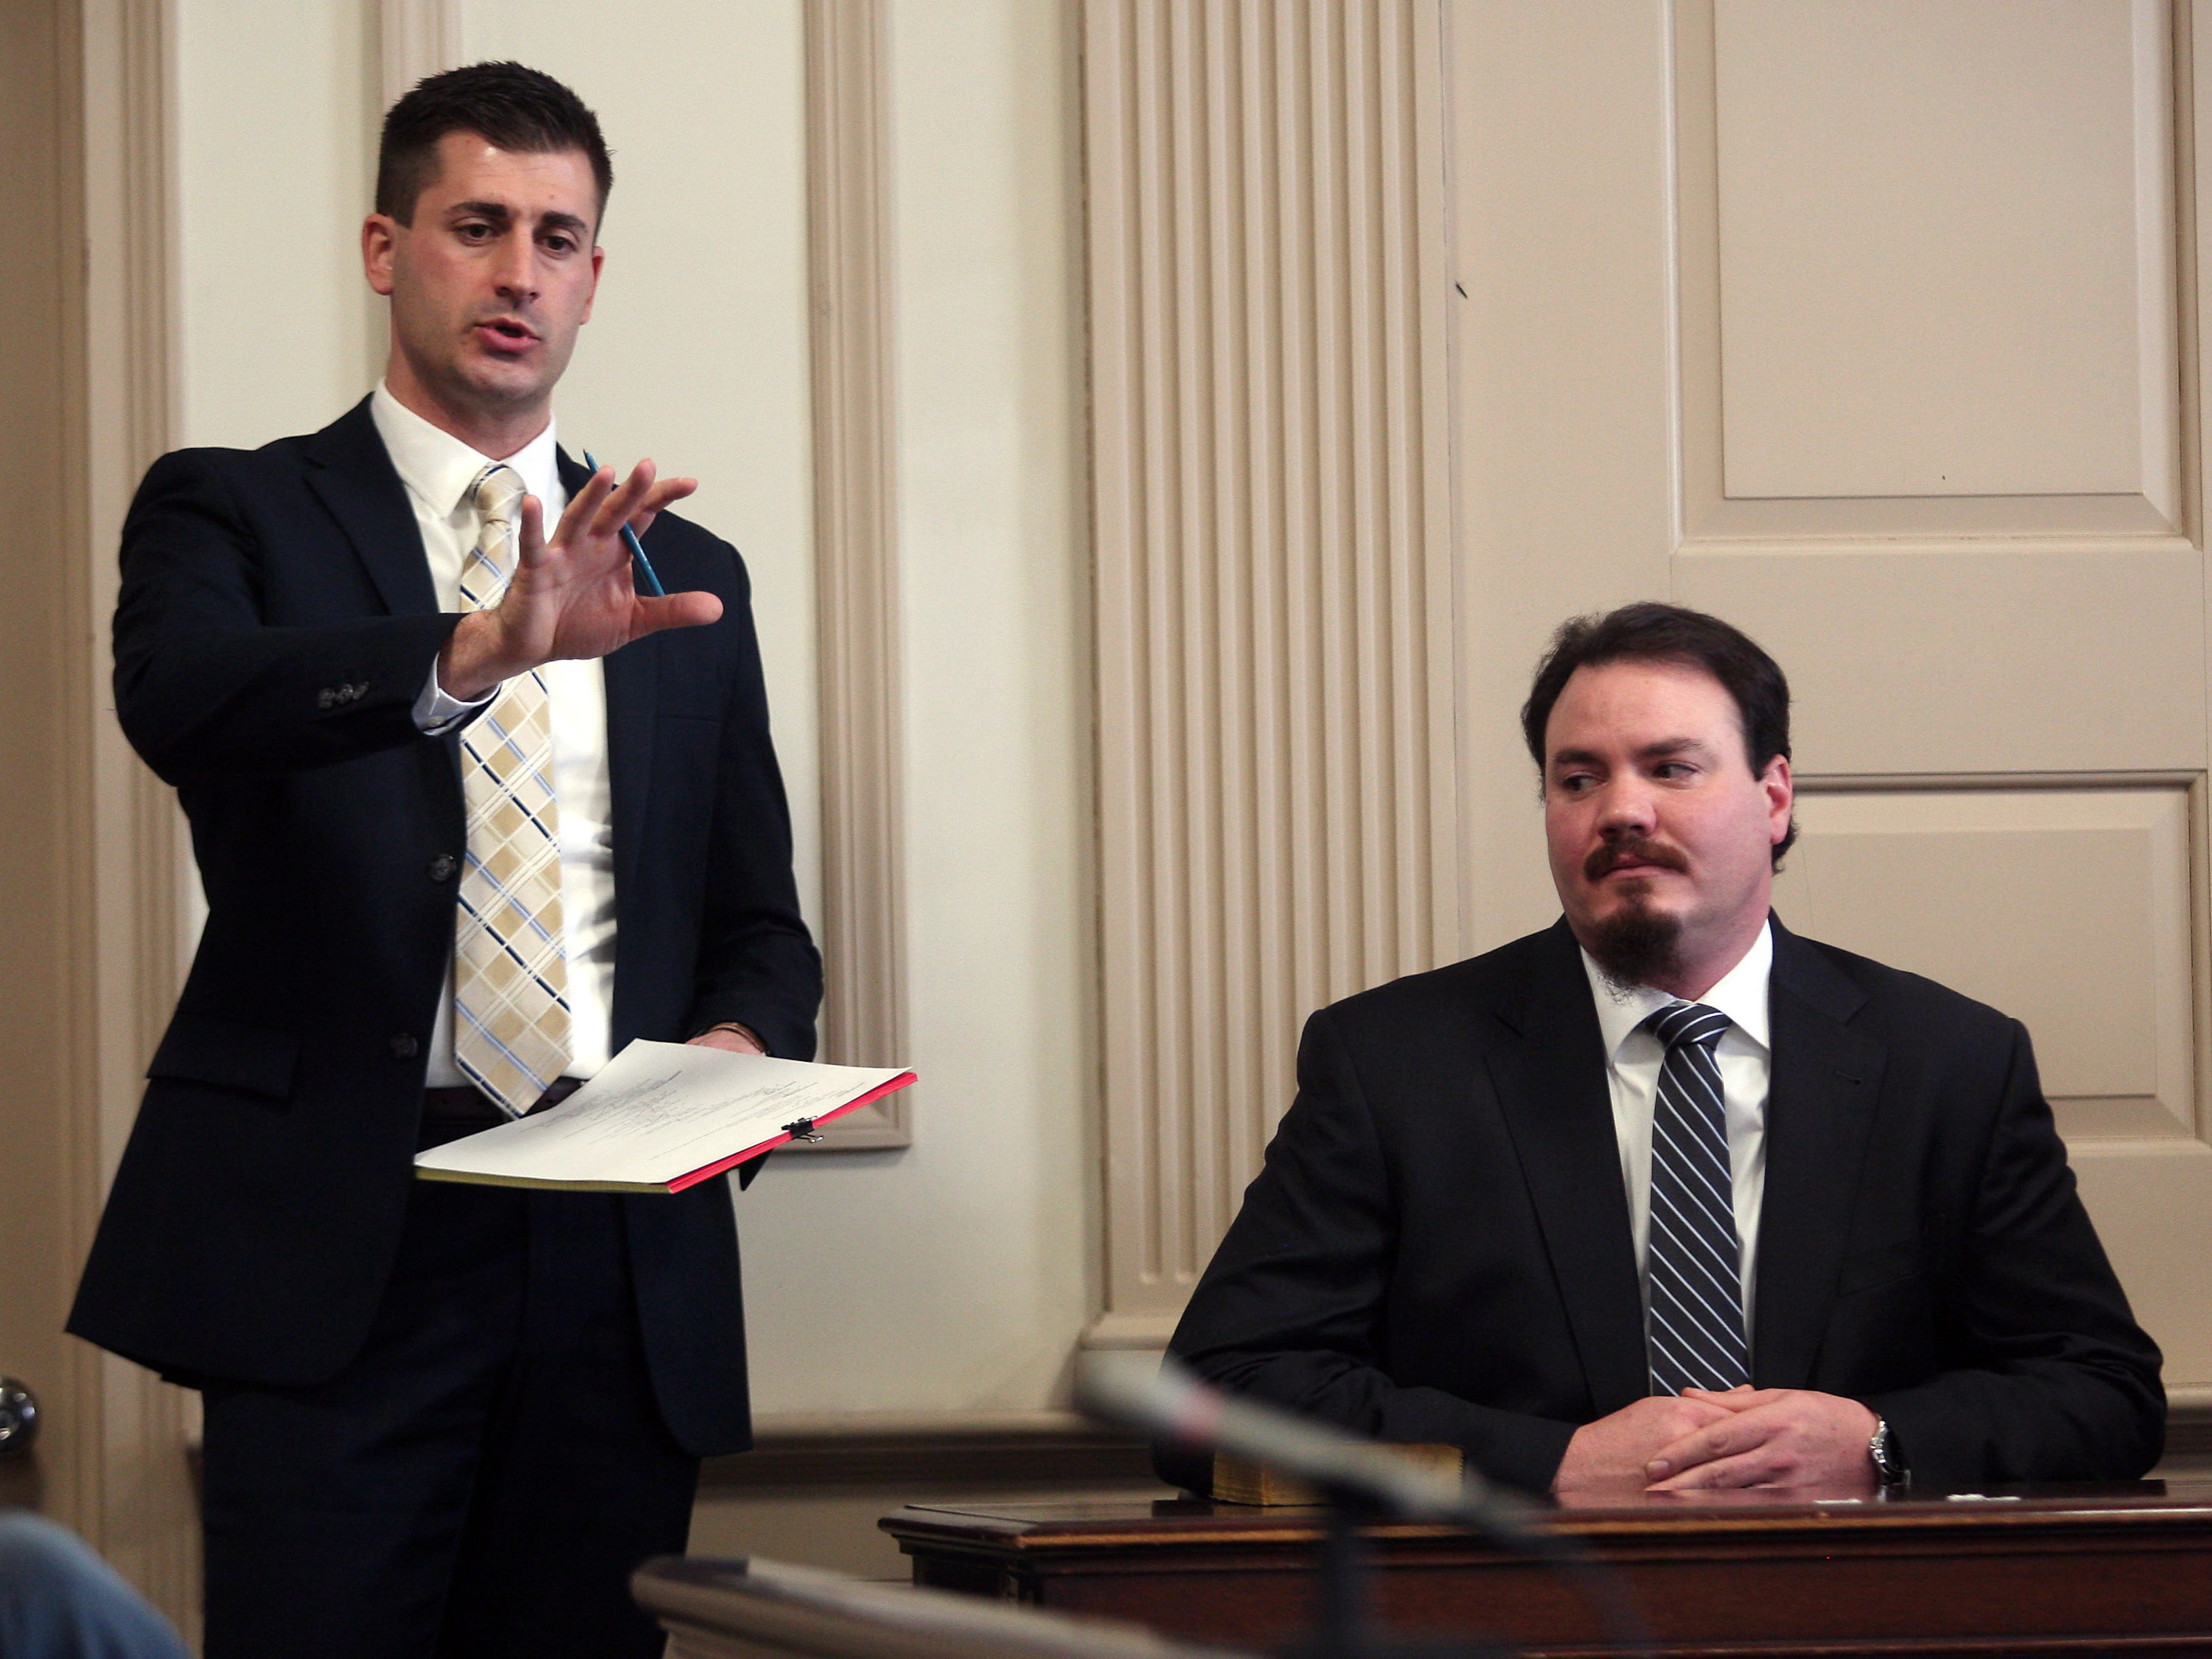 Morris County Assistant Prosecutors Matthew Troiano on direct examination of states witness Michael Becker during the murder trial of Kashif Parvaiz, accused of killing his wife Nazish Noorani in August 2011. February 4, 2015. Morristown, N.J. Bob Karp/Staff Photographer.